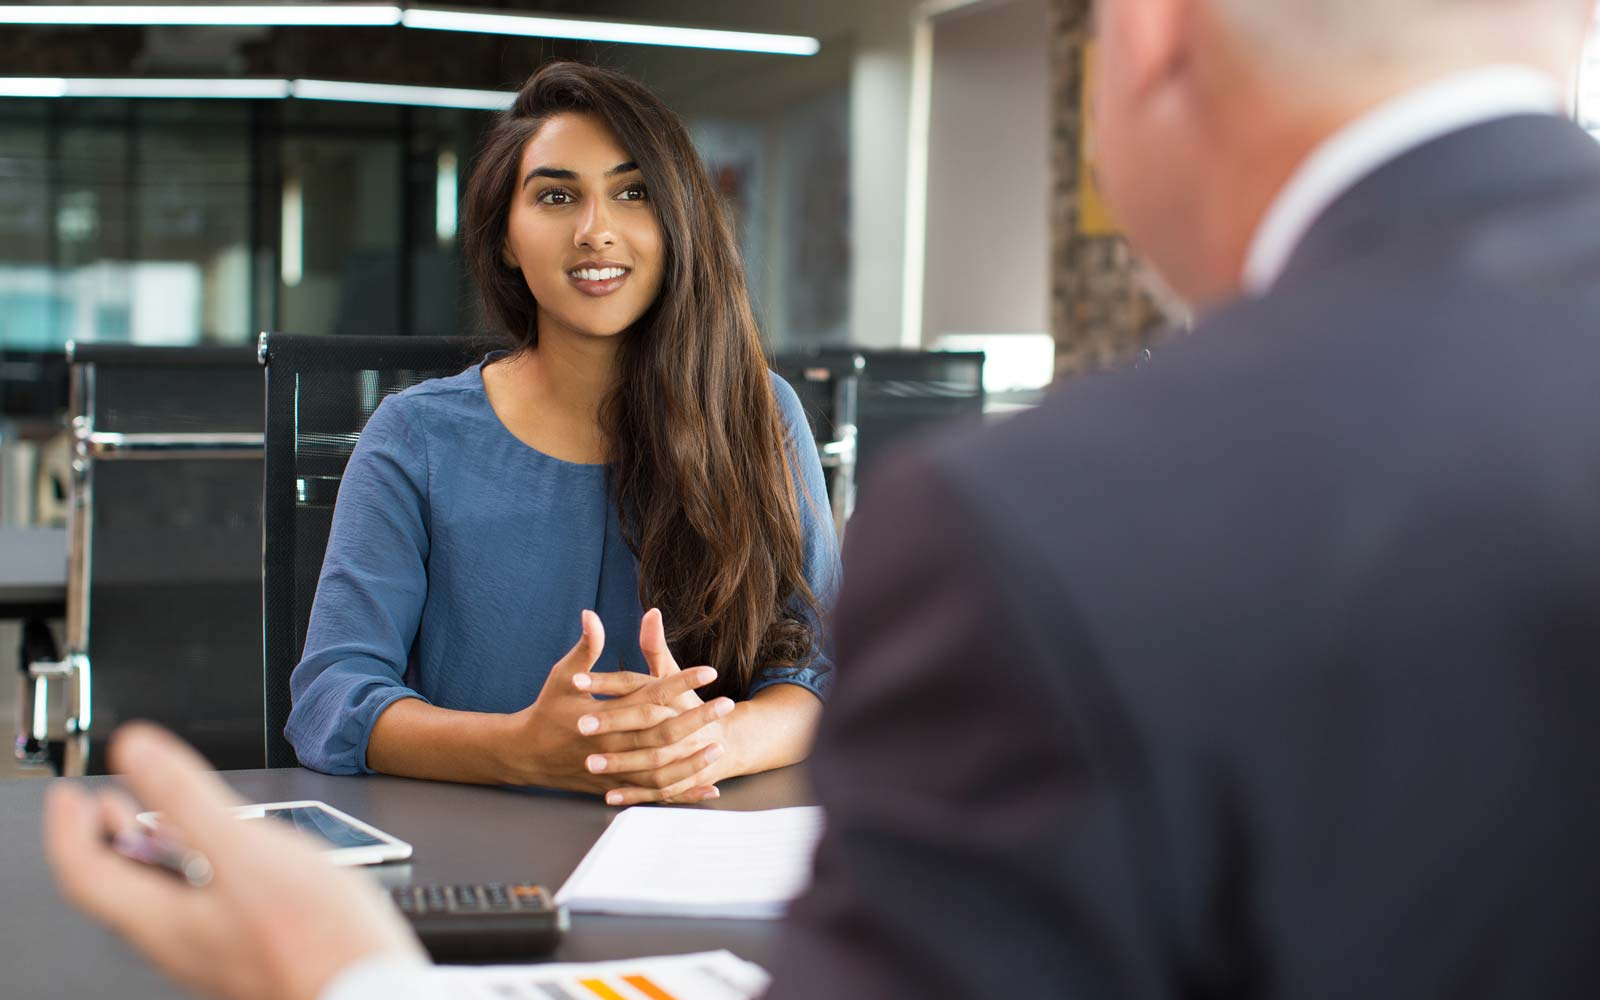 21 Job Interview Questions That Are Designed to Trick You